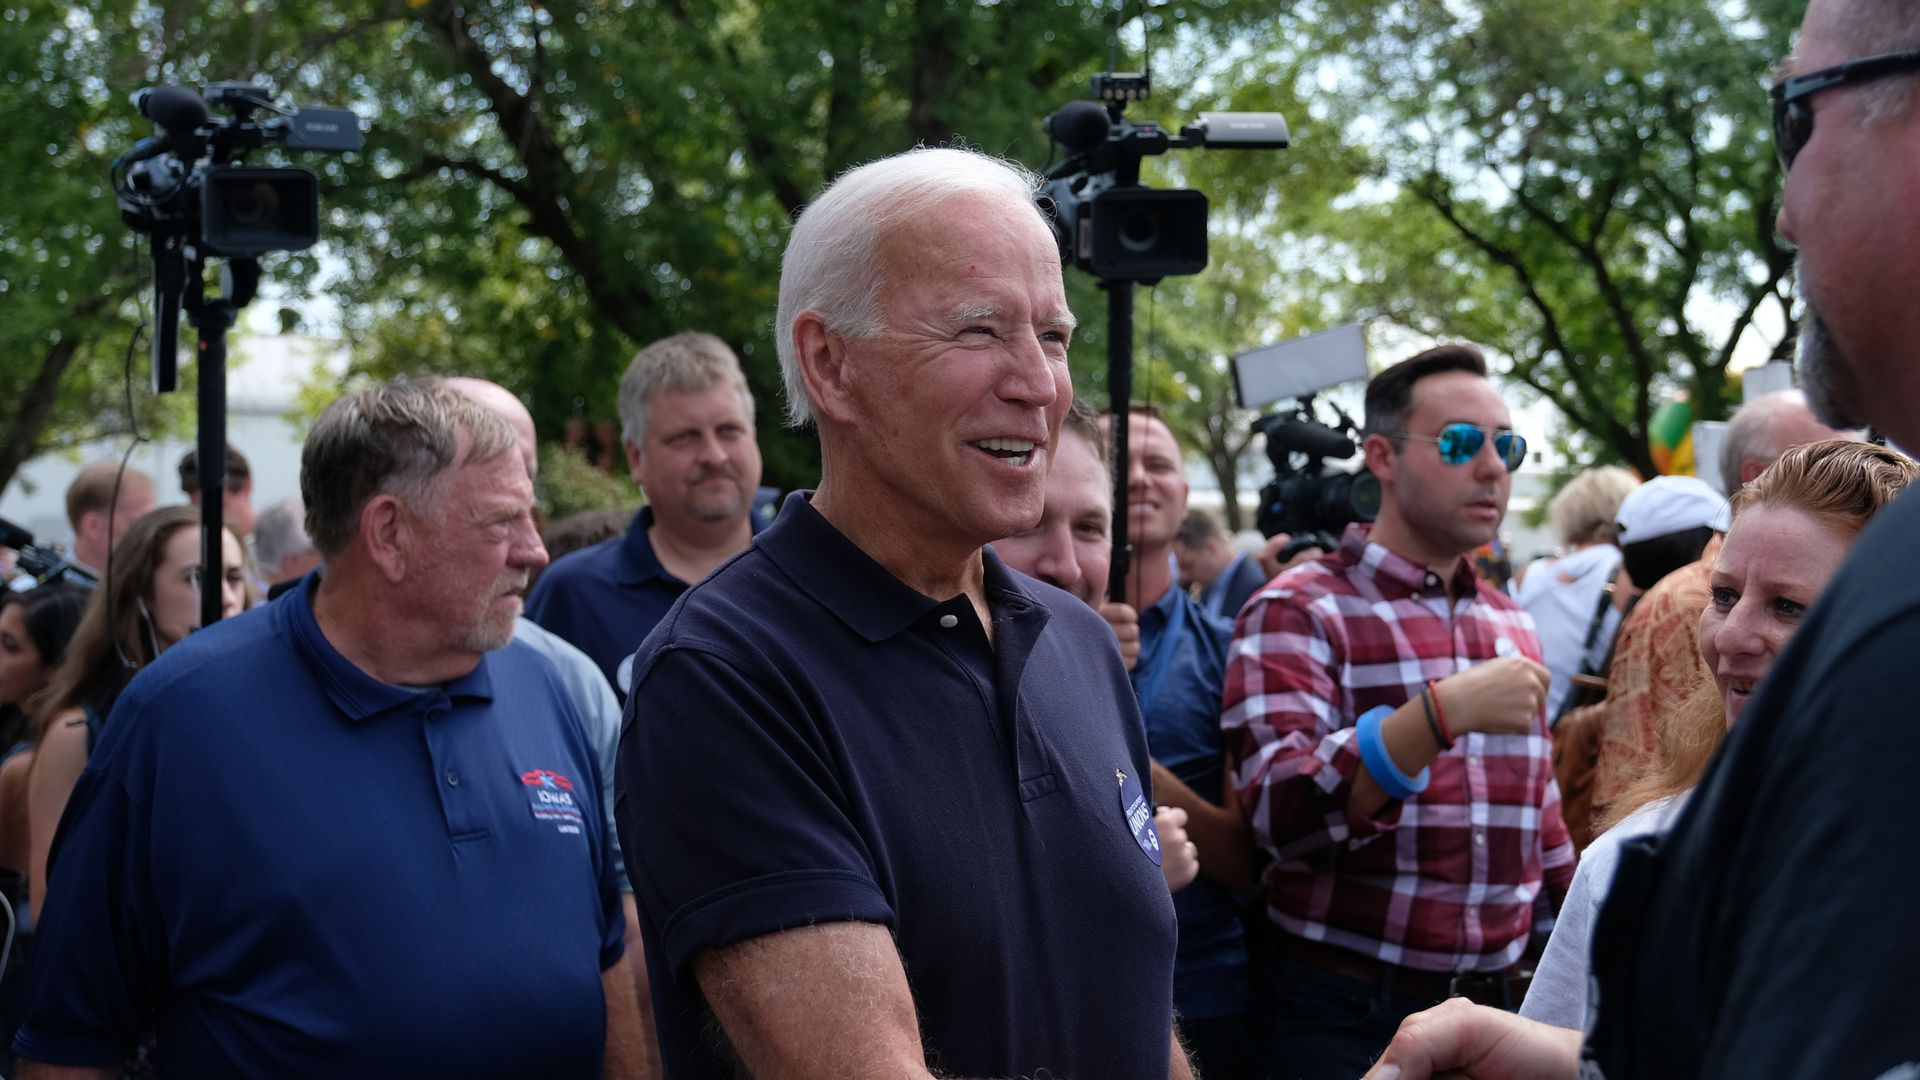 Former Vice President and 2020 hopeful Joe Biden campaigning in Iowa